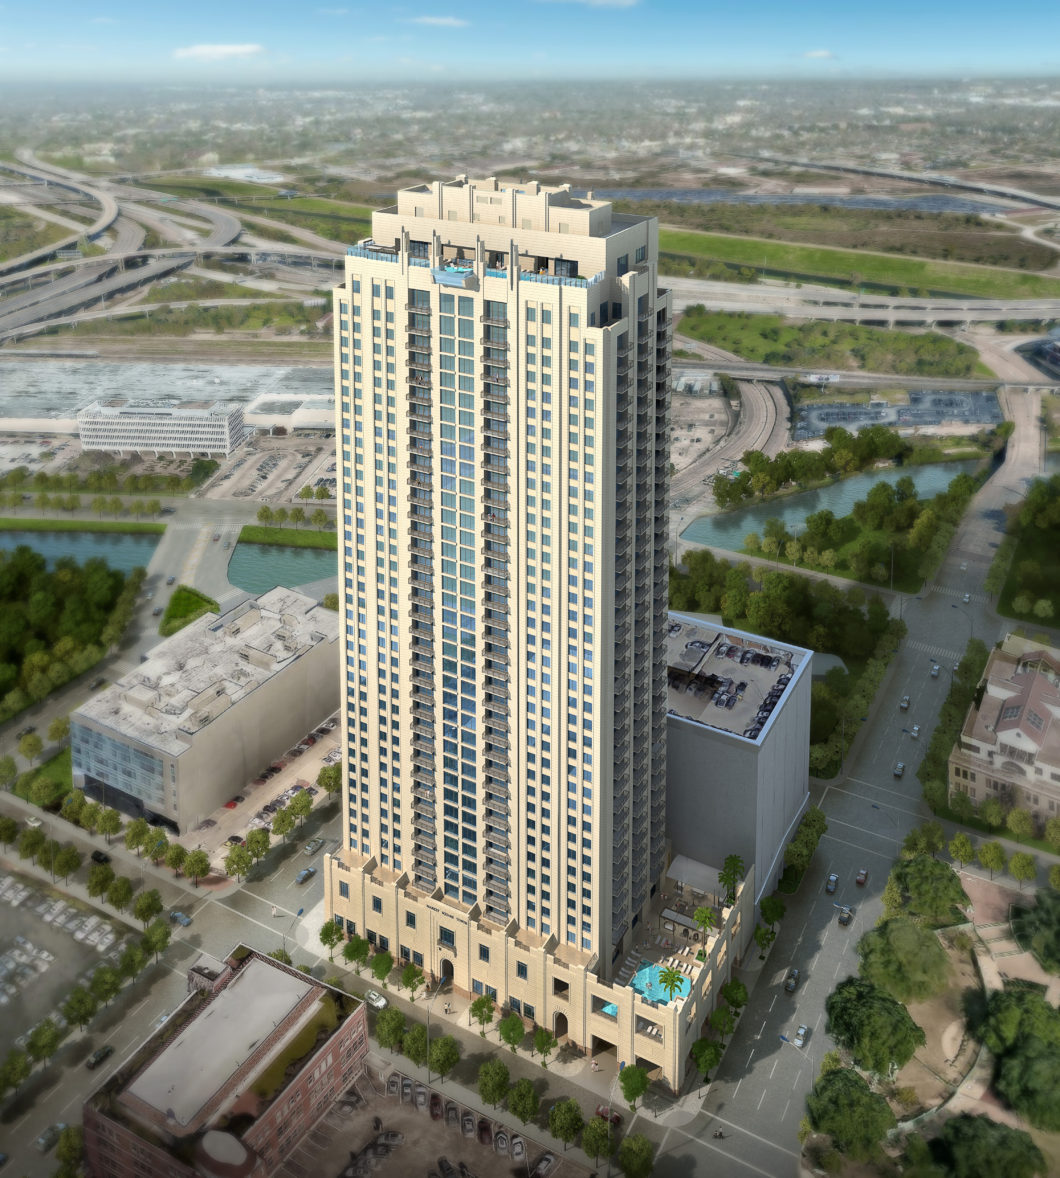 Market Square Tower Houston Apartments For Rent & Lease